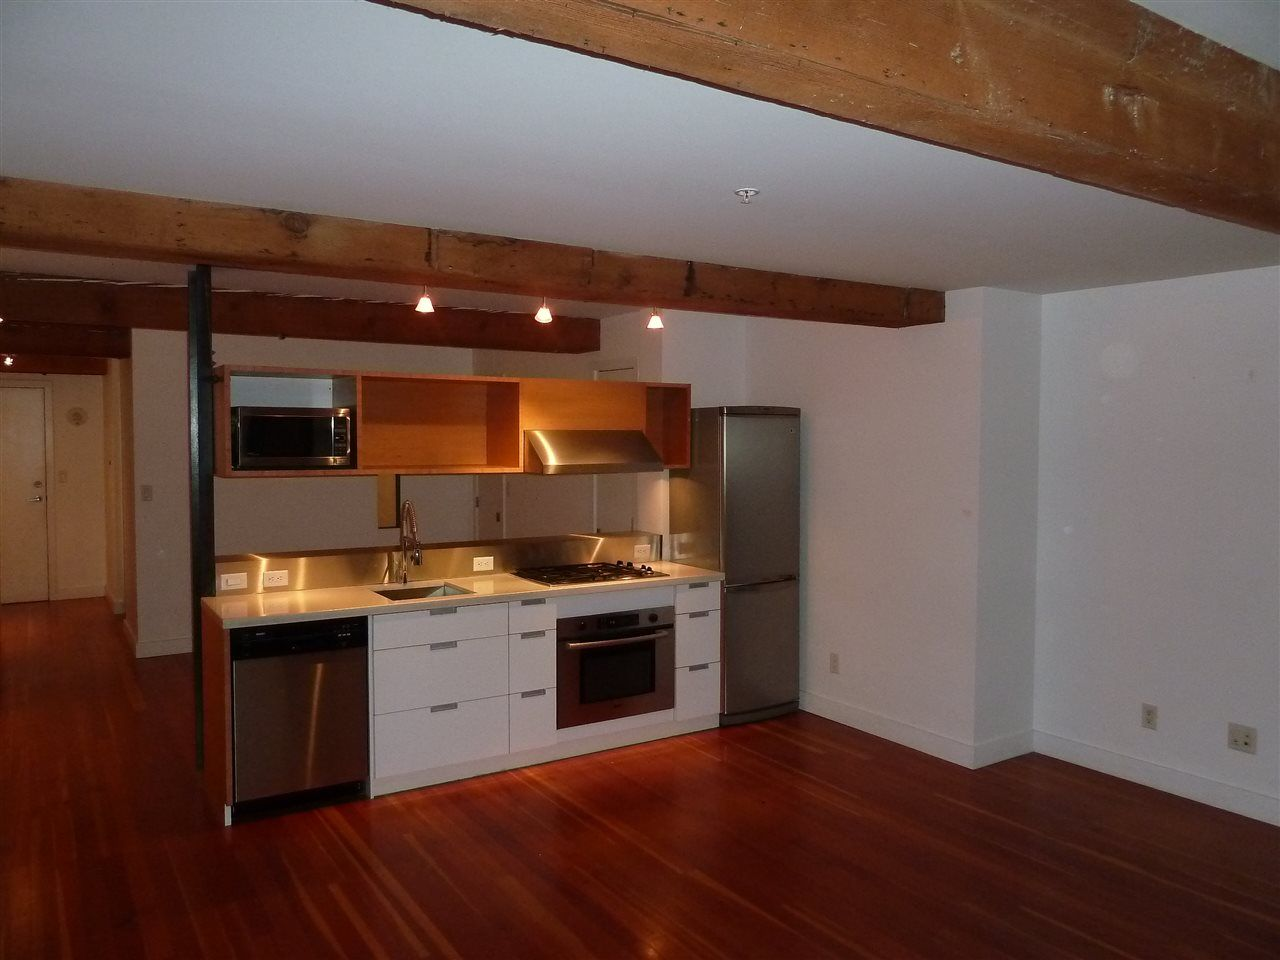 Main Photo: 2 528 BEATTY Street in Vancouver: Downtown VW Condo for sale (Vancouver West)  : MLS®# R2024354